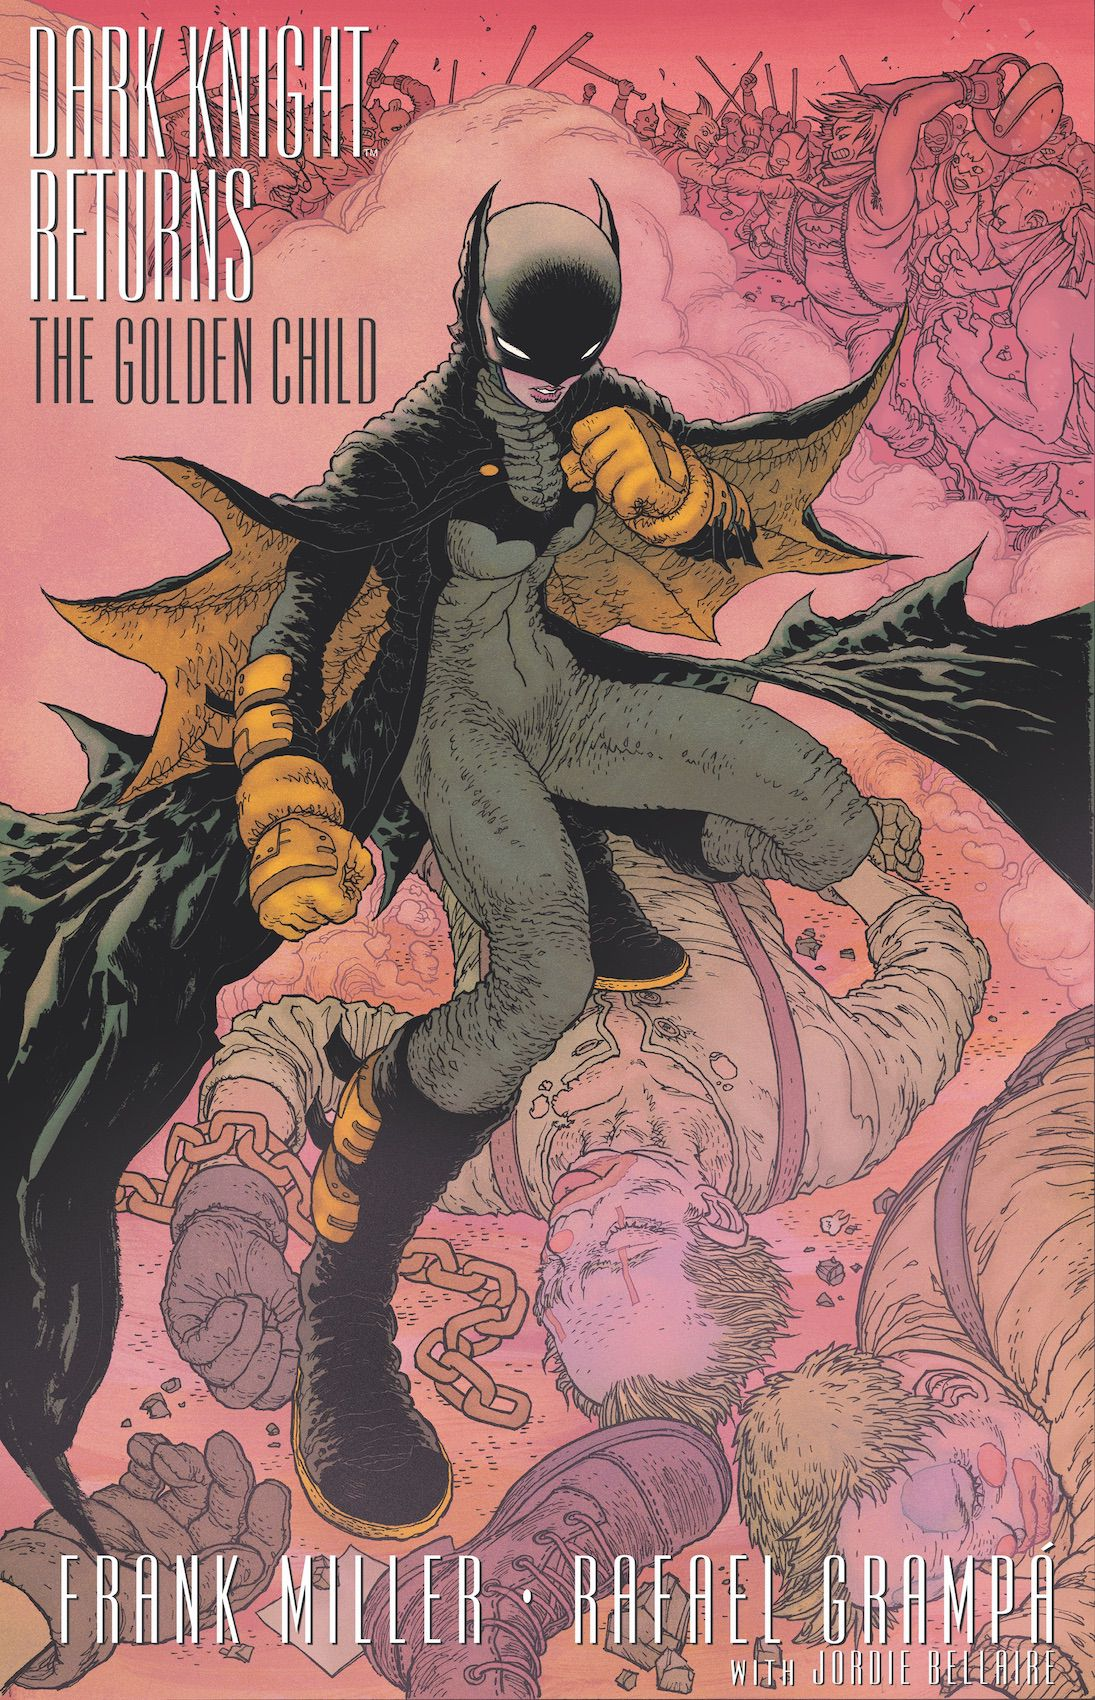 Carrie Kelly/Batwoman, in a black costume with yellow highlights, stands over some unconscious clown-faced men in the middle of a brawl, on the cover of Dark Knight Returns: The Golden Child, DC COmics (2019).